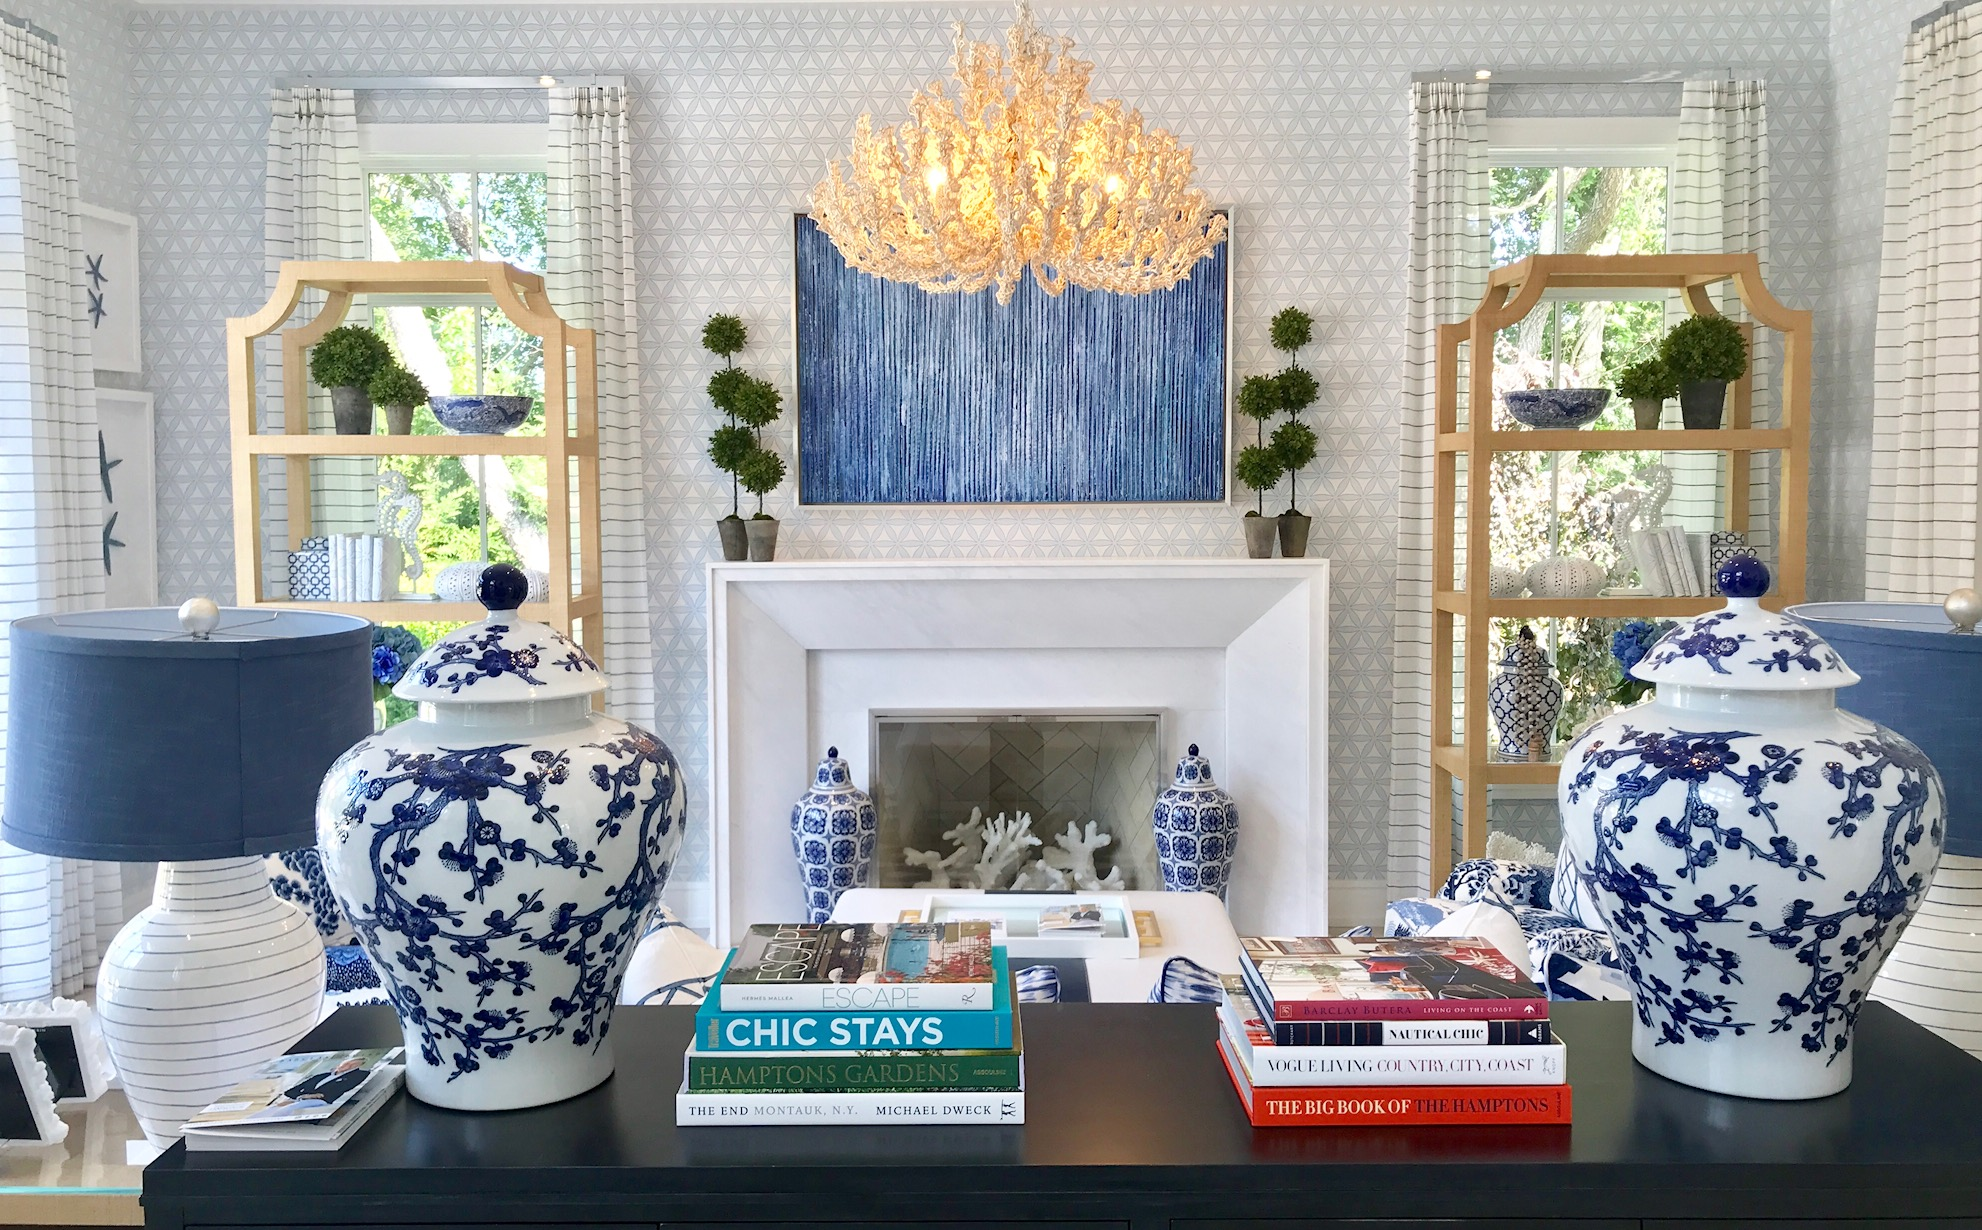 Kdhamptons photo diary the 2018 hampton designer showhouse presented by traditional home for Traditional home designer showhouse 2017